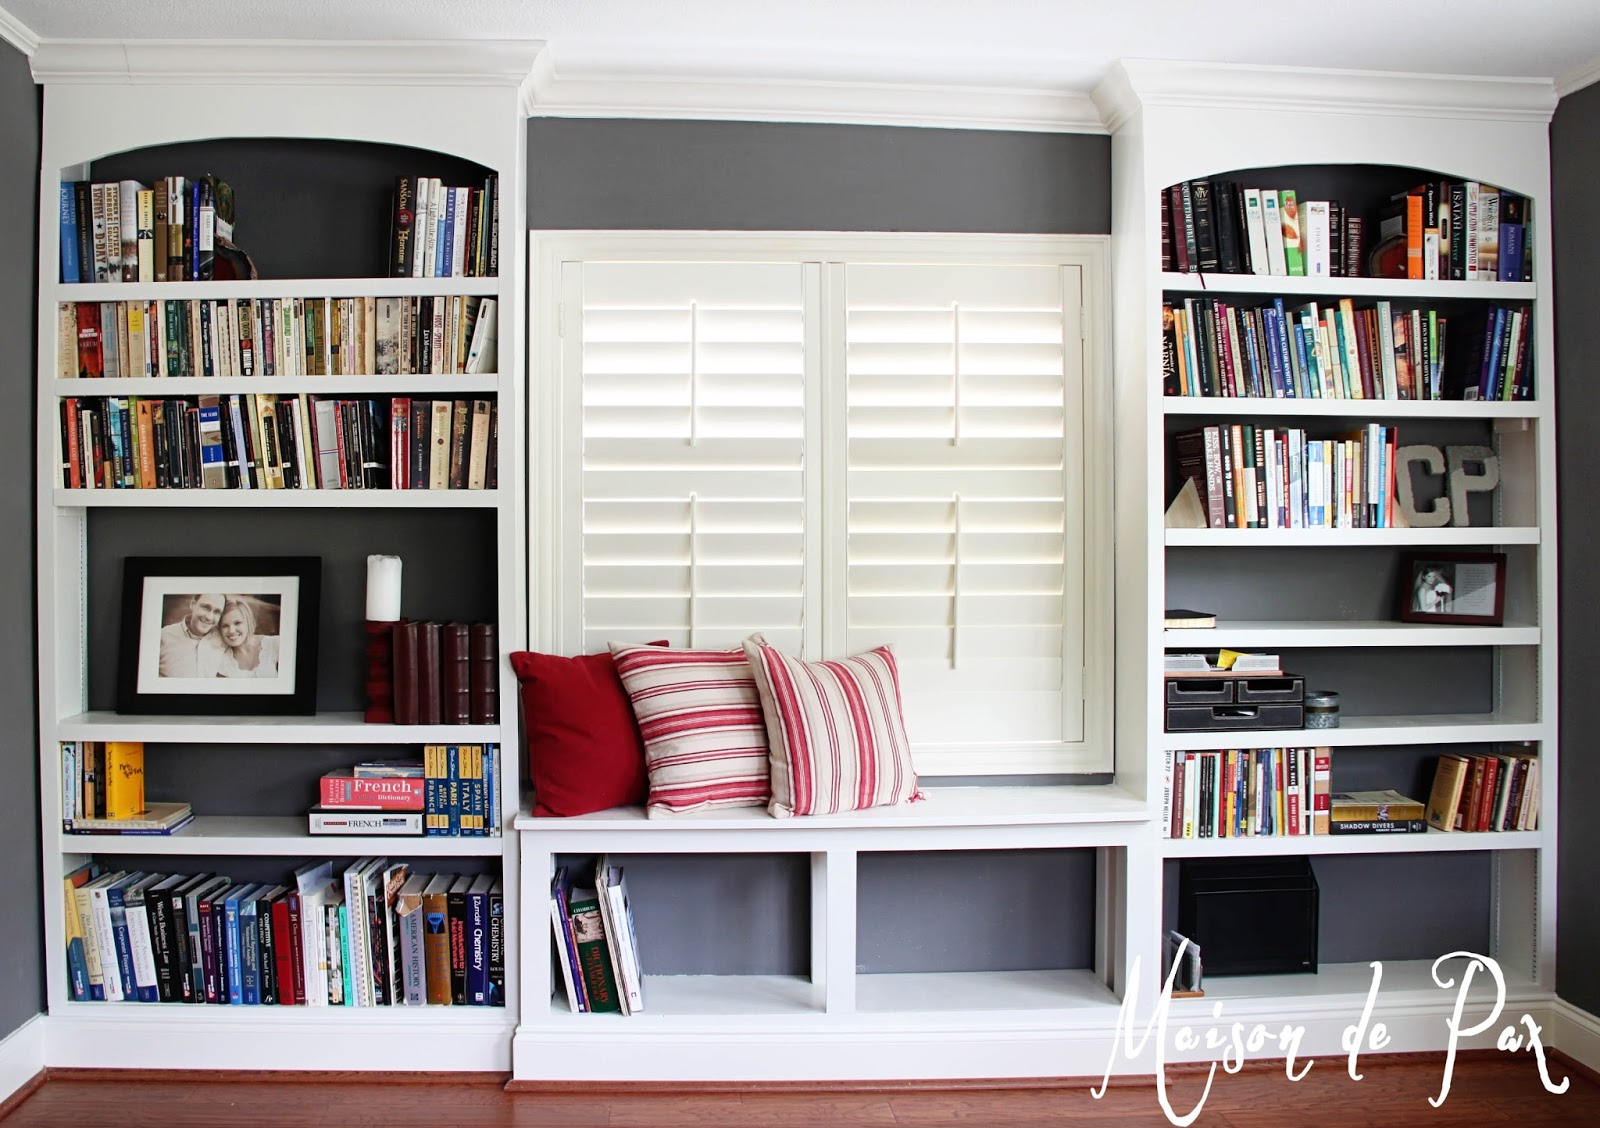 DIY Built-In Bookshelves - Maison de Pax